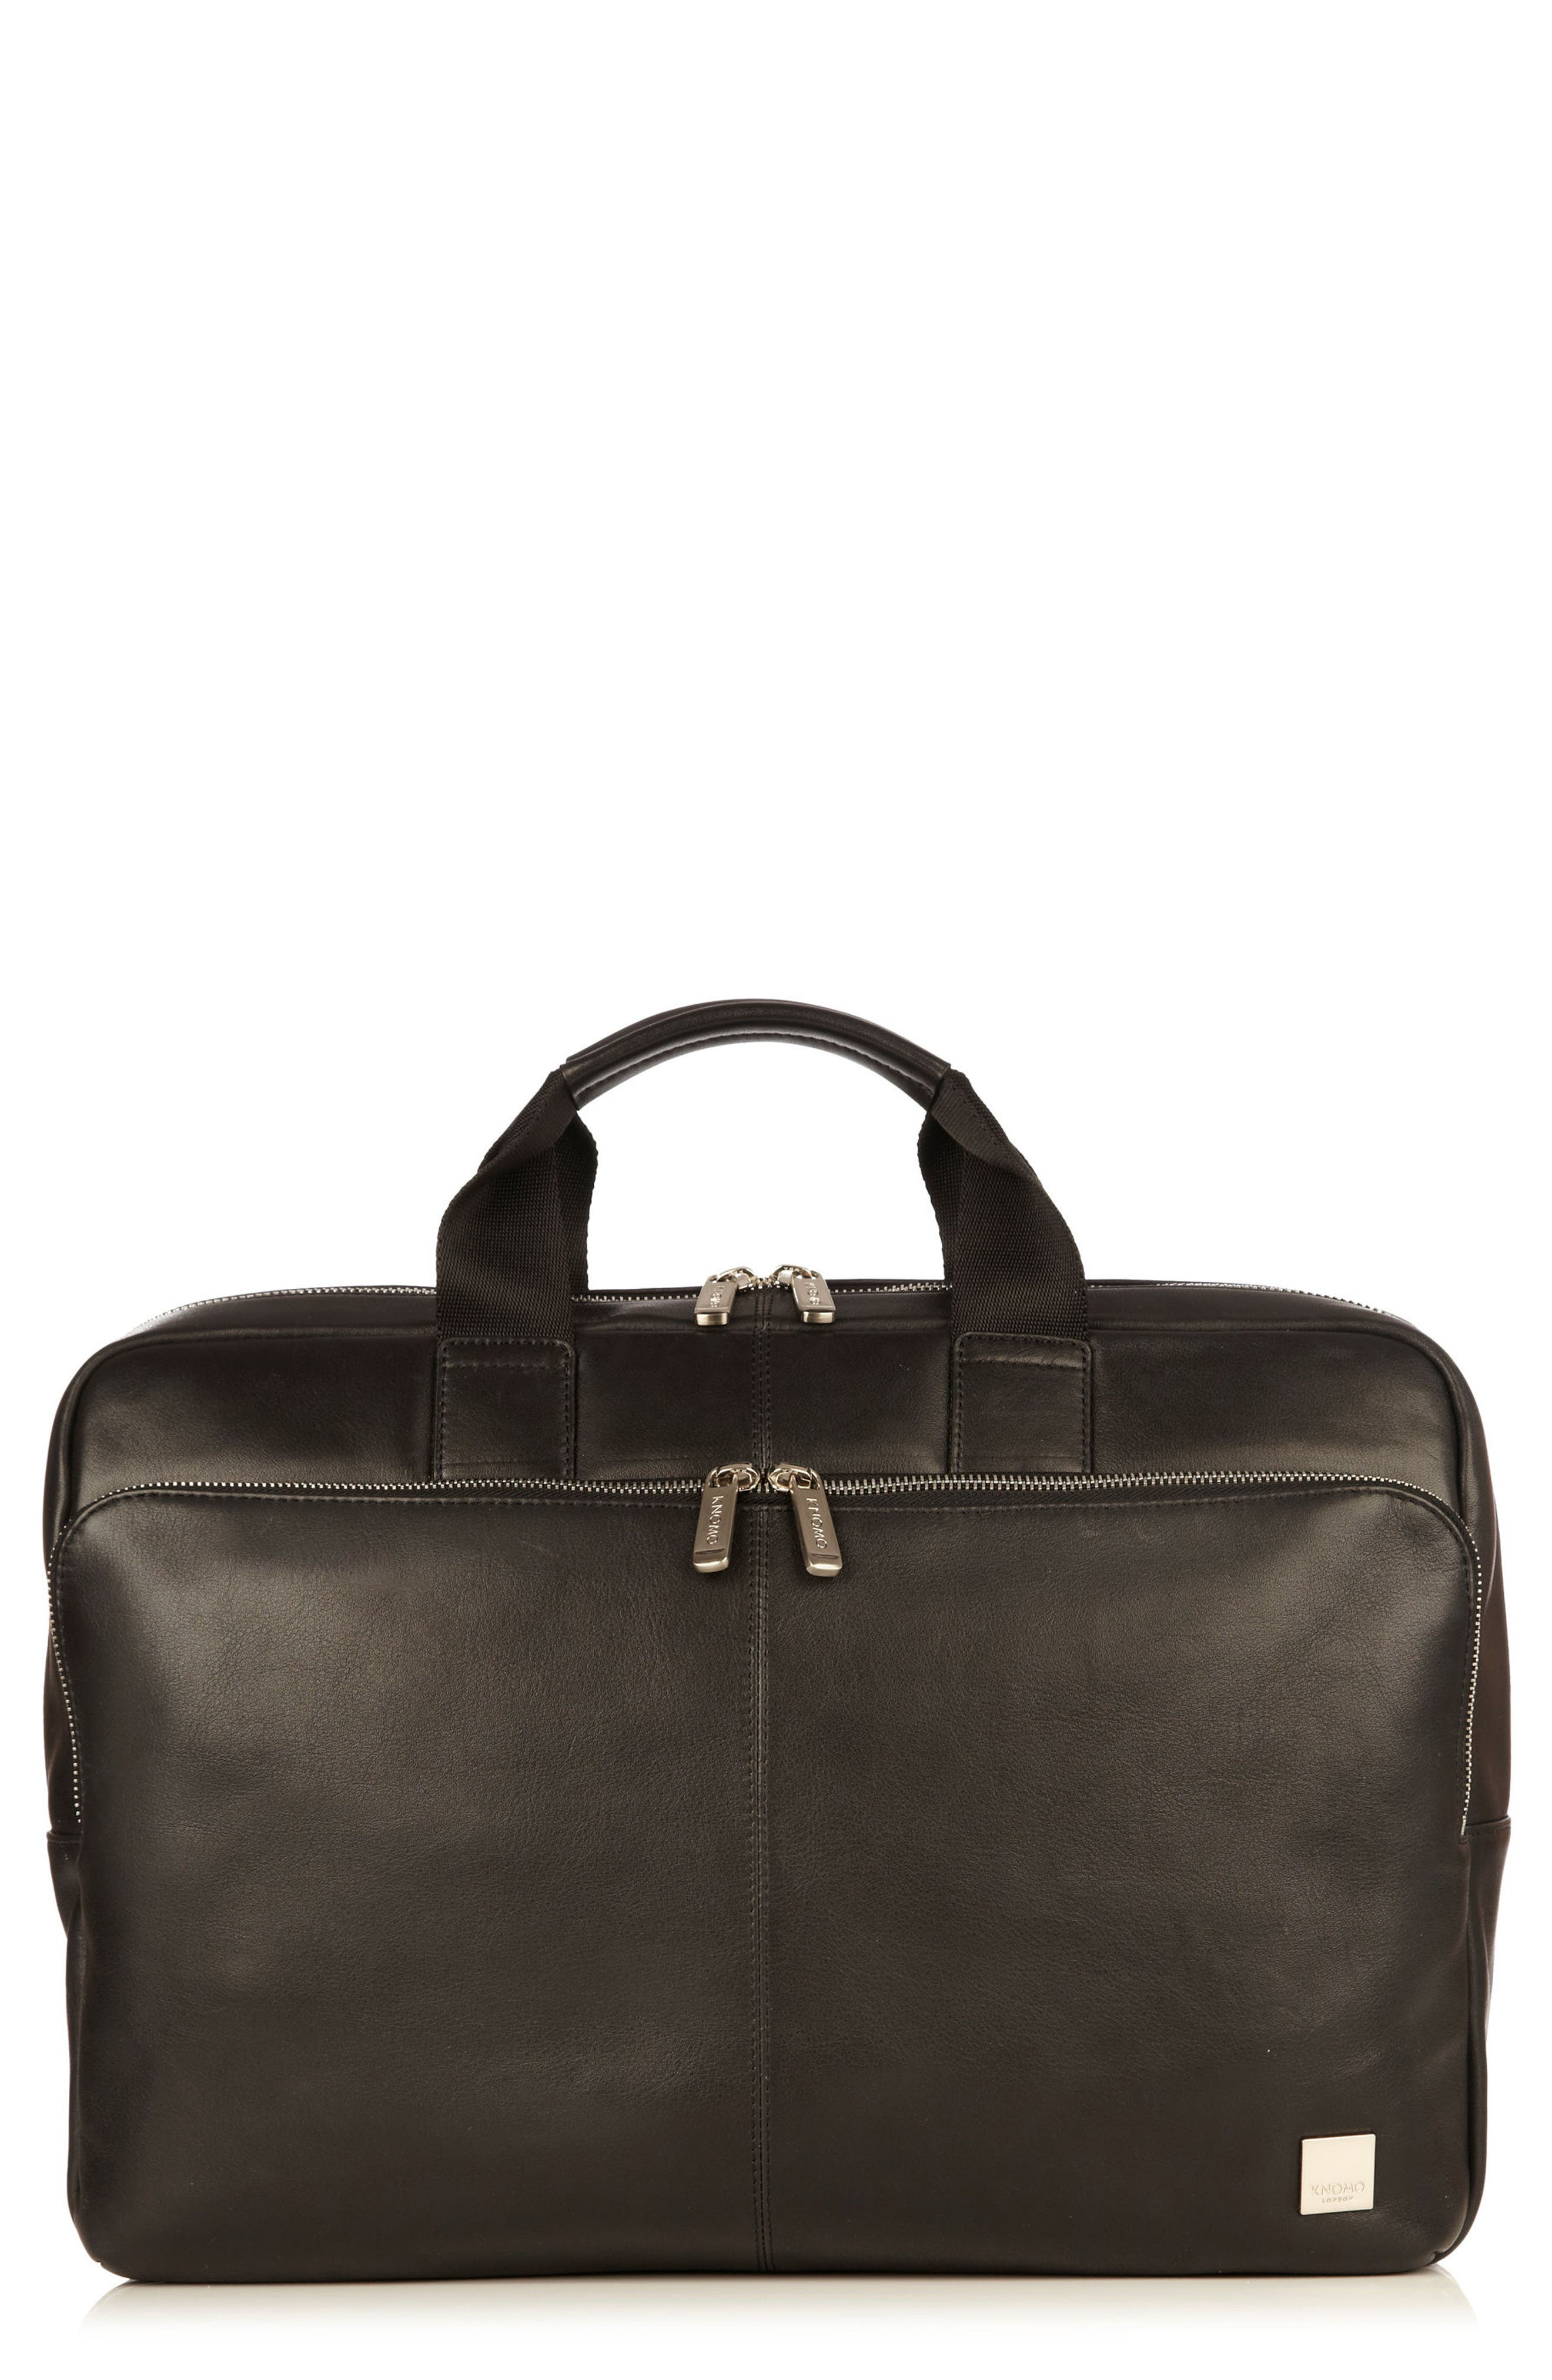 KNOMO London Brompton Newberry Leather Briefcase